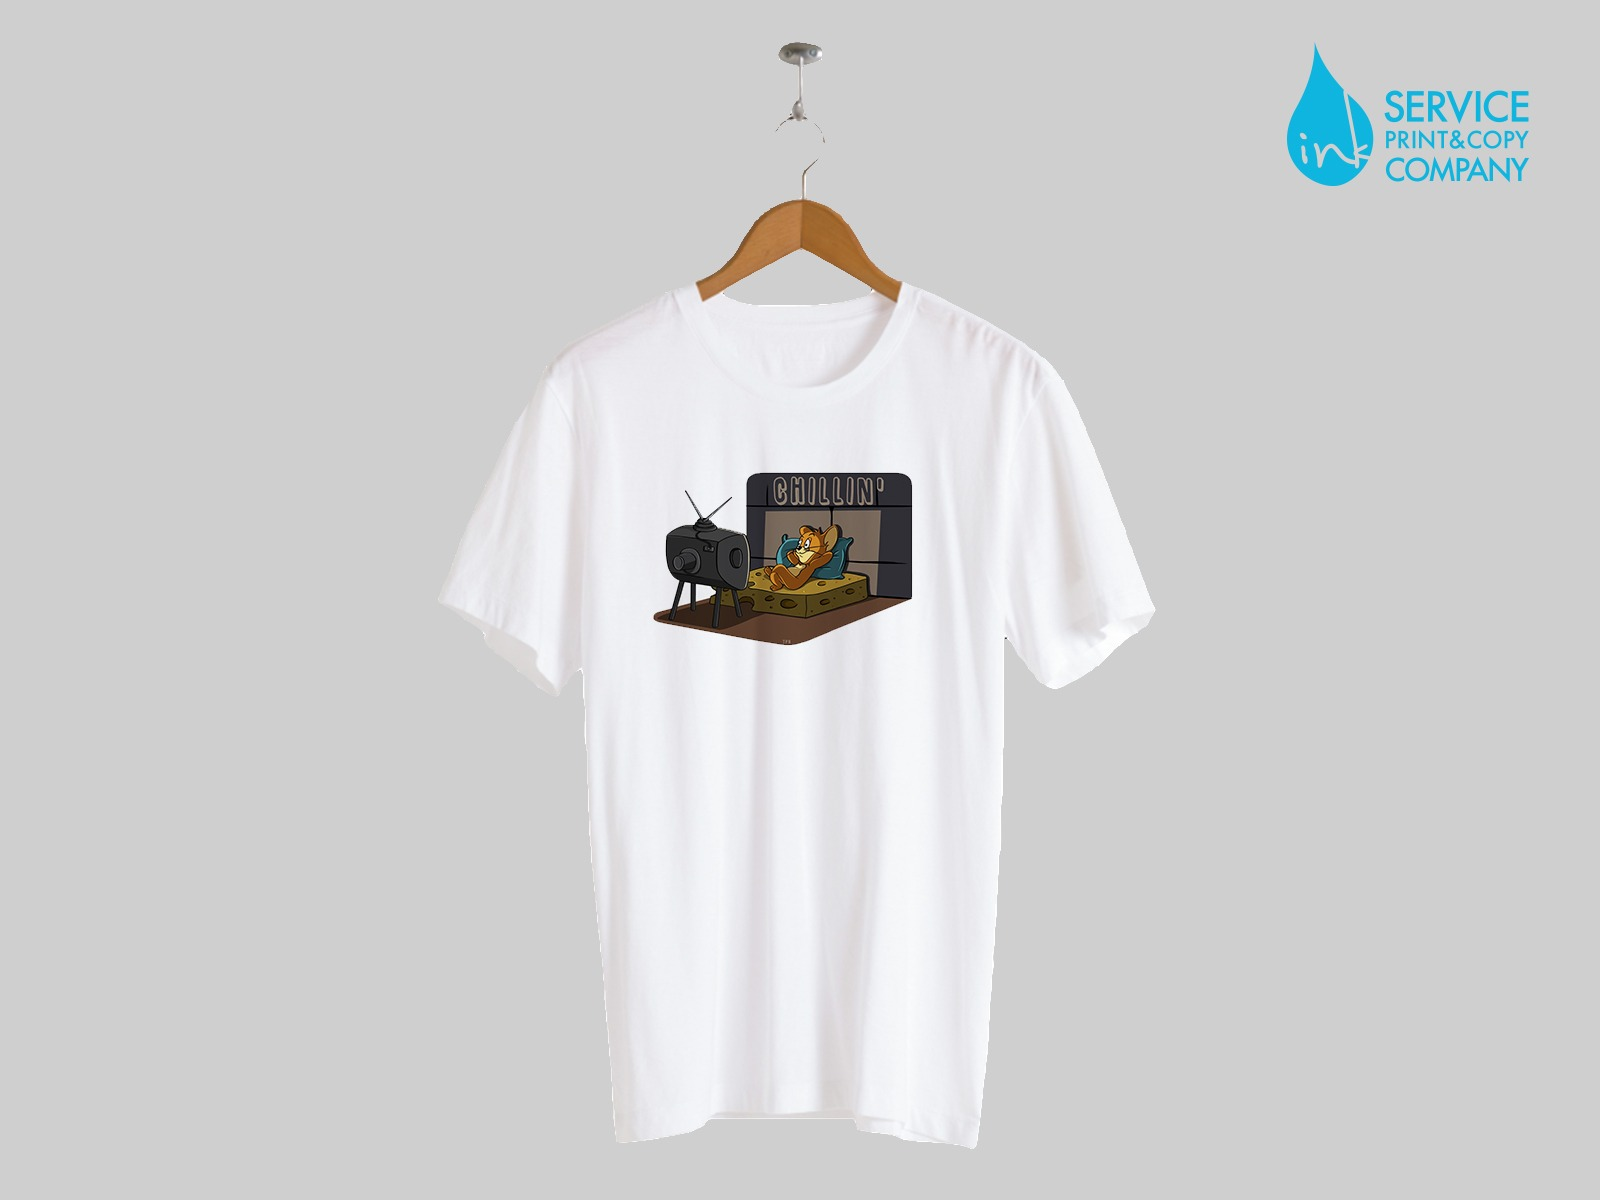 Print on short sleeves t-shirts (White)